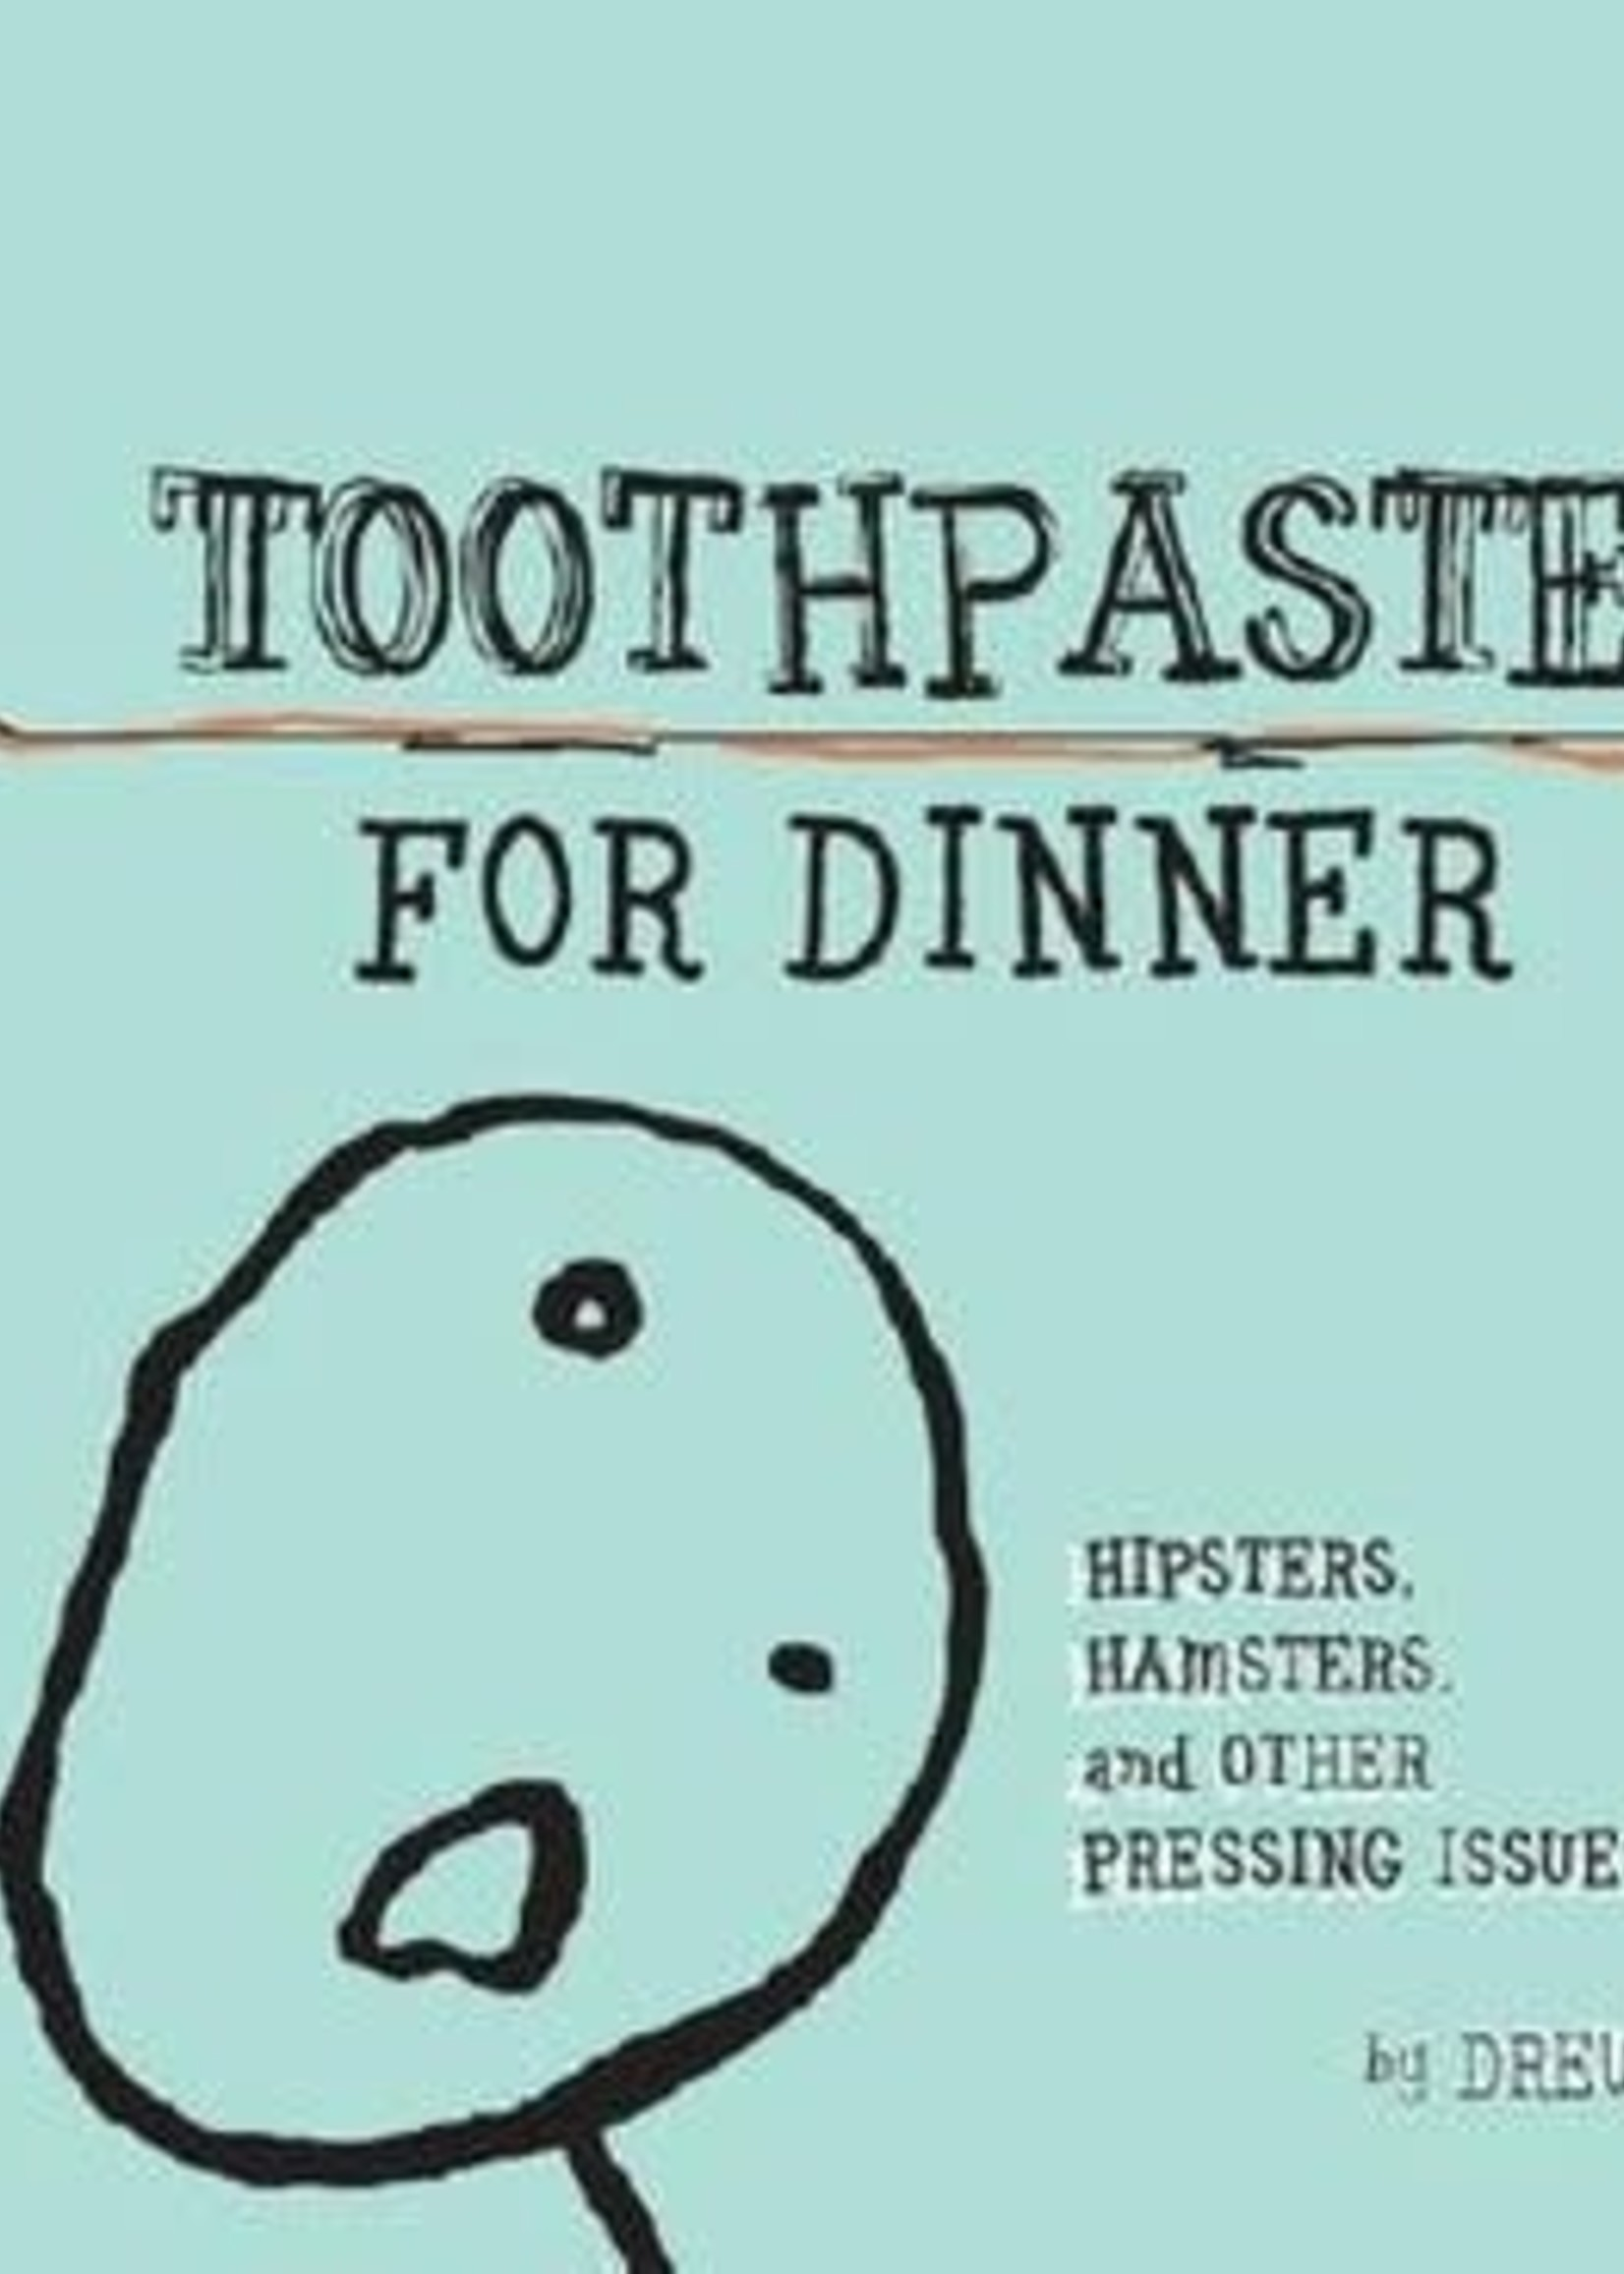 USED - Toothpaste for Dinner by Drew